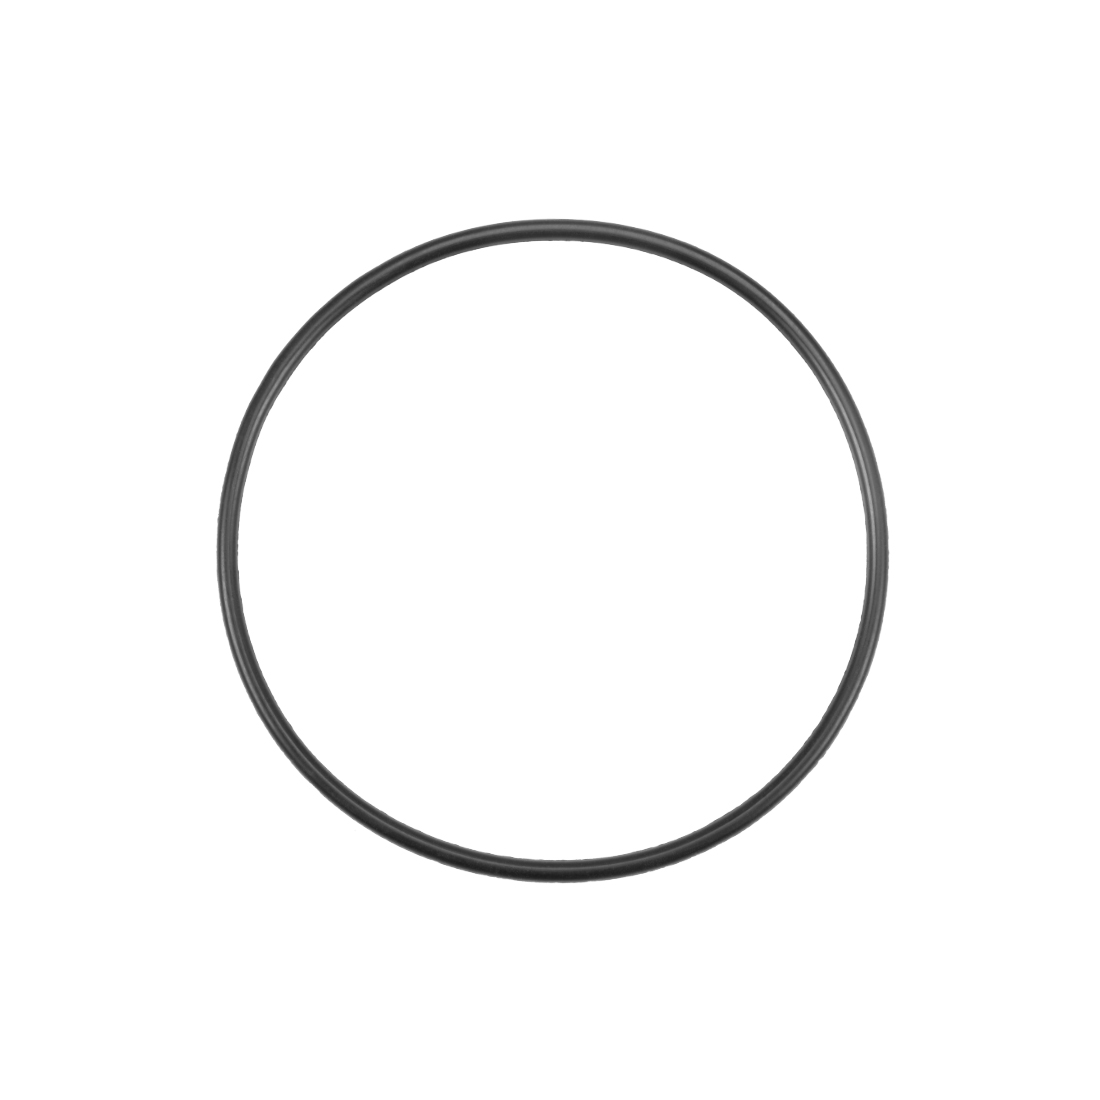 O-Rings Nitrile Rubber 75mm x 80.3mm x 2.65mm Round Seal Gasket